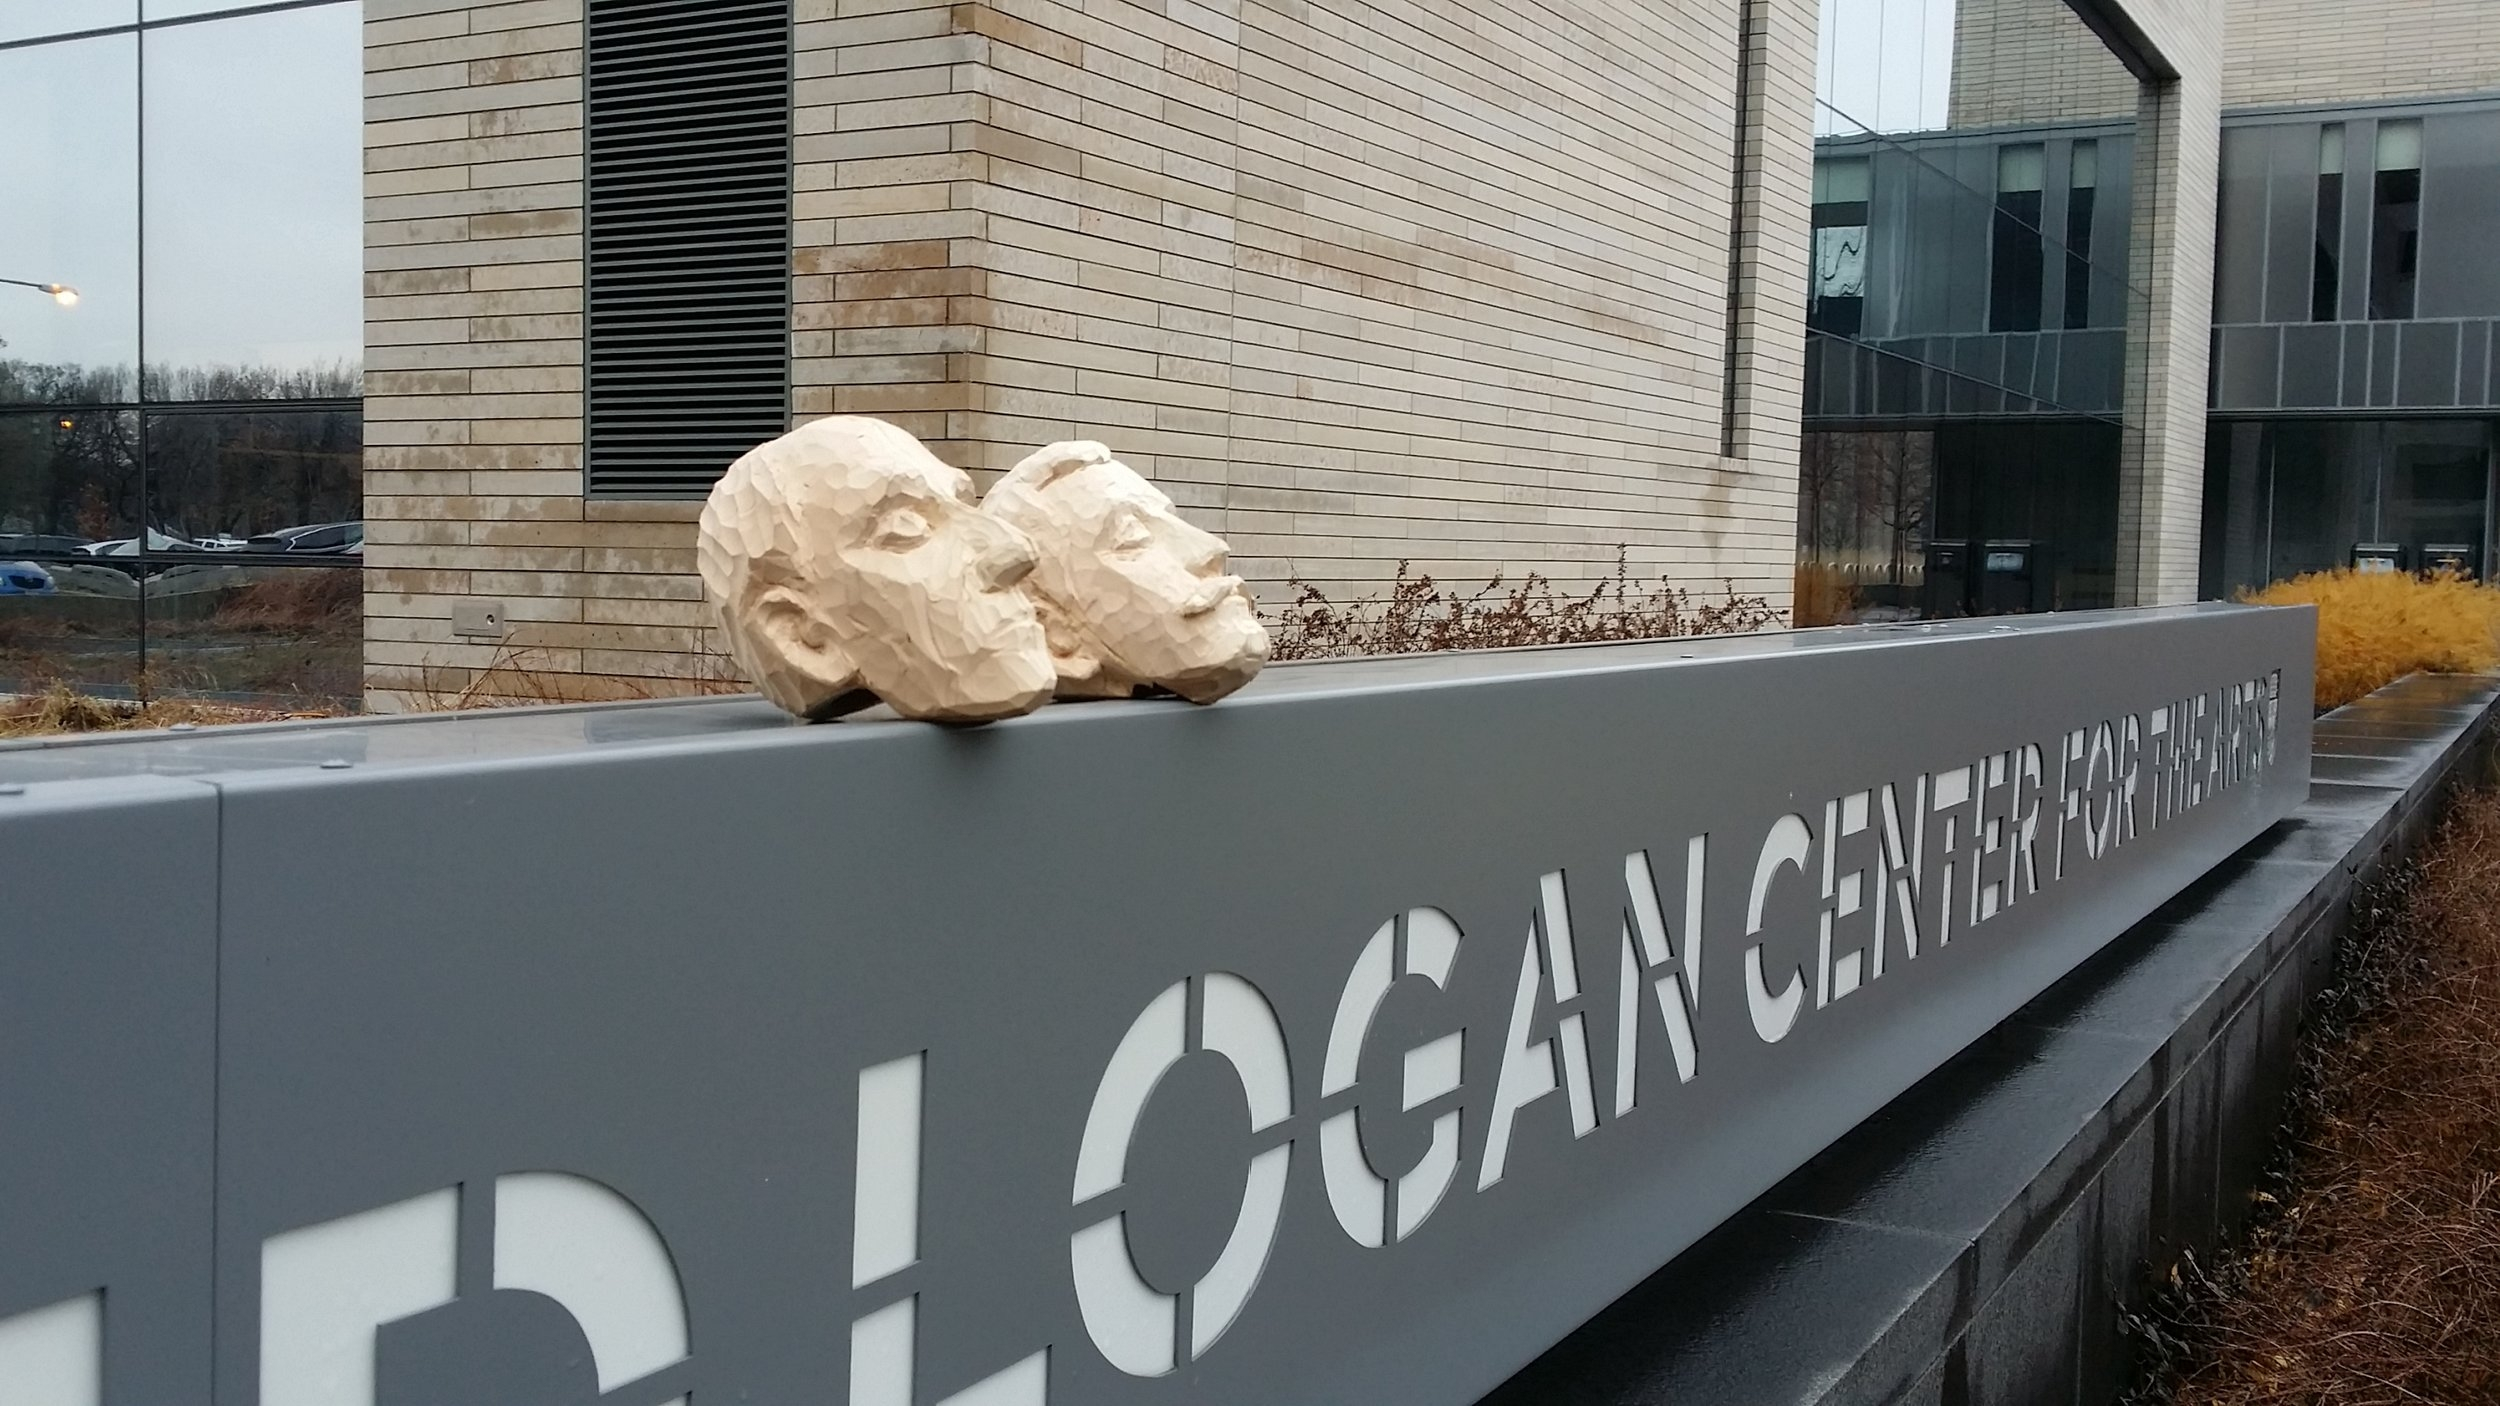 Wilbur and Orville's heads in process check out the Logan Center for the Arts.